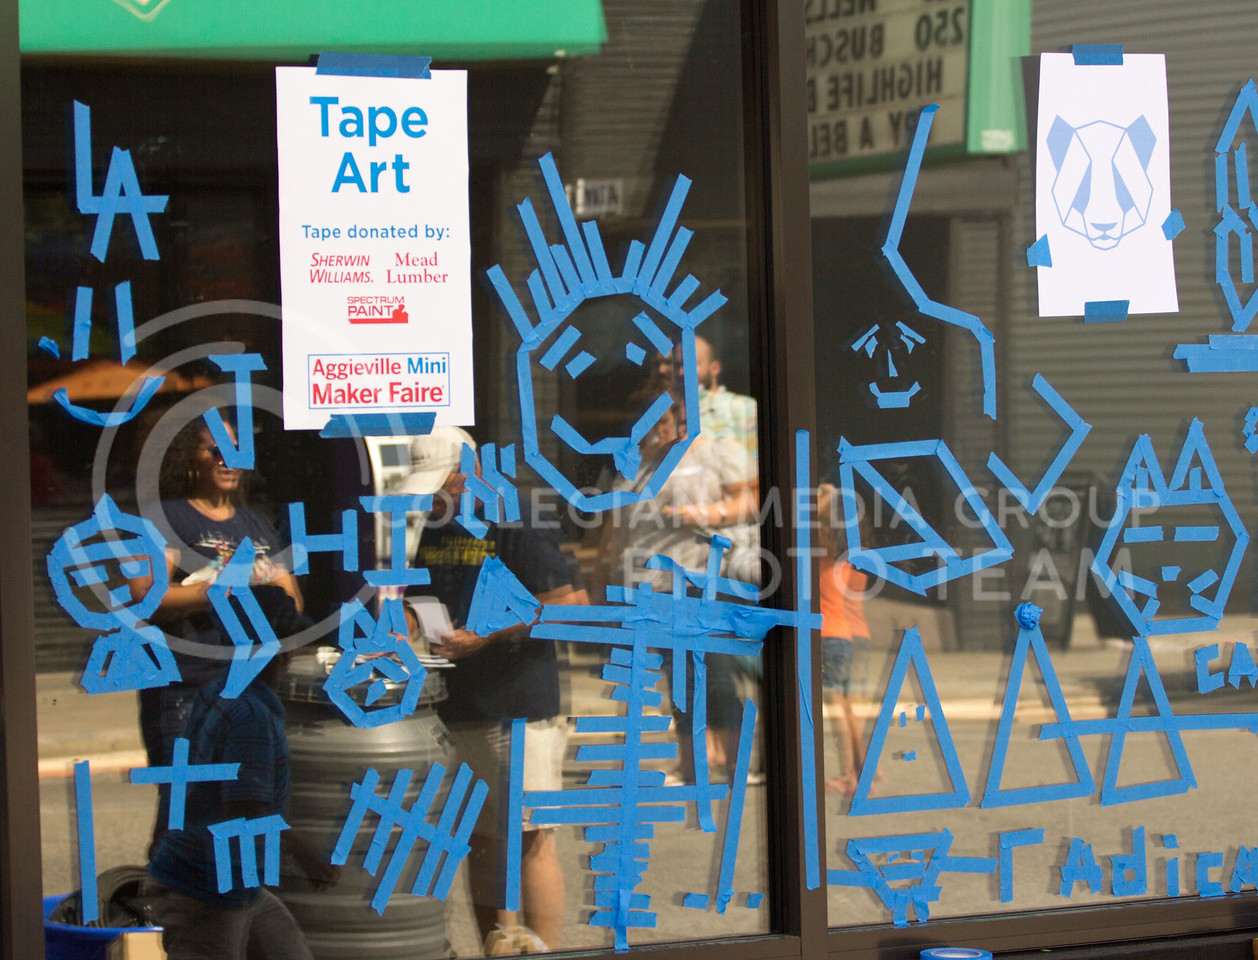 Over the course of the day people came up and made art out of tape on the windows for the 4th annual Mini Maker Fair on 23 Sept. 2017 (Alex Shaw   Collegian Media Group)